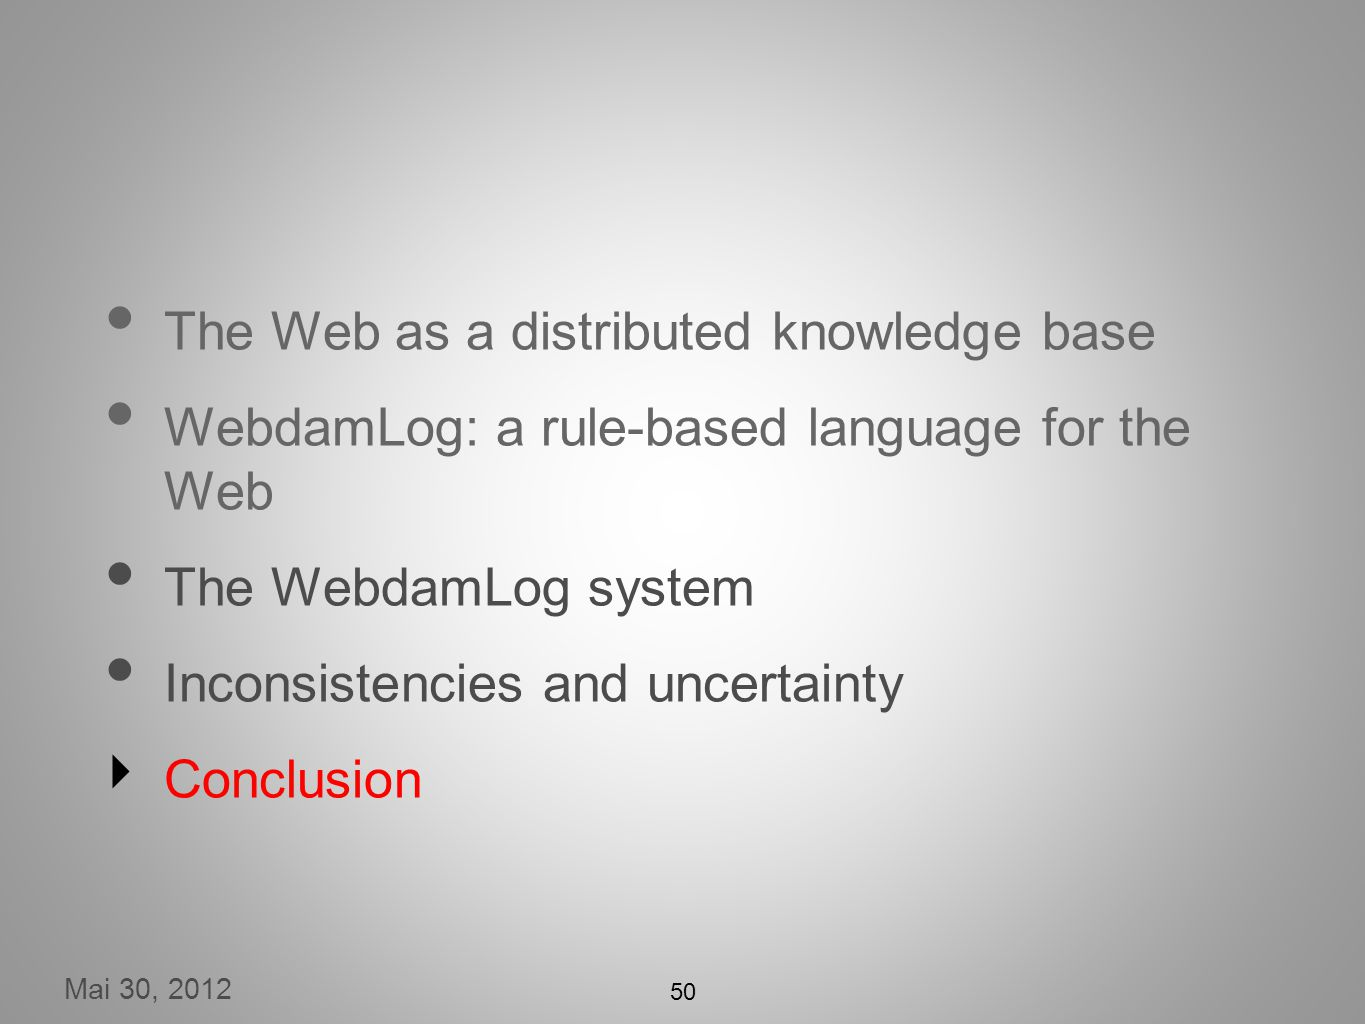 Mai 30, 2012 50 The Web as a distributed knowledge base WebdamLog: a rule-based language for the Web The WebdamLog system Inconsistencies and uncertainty Conclusion